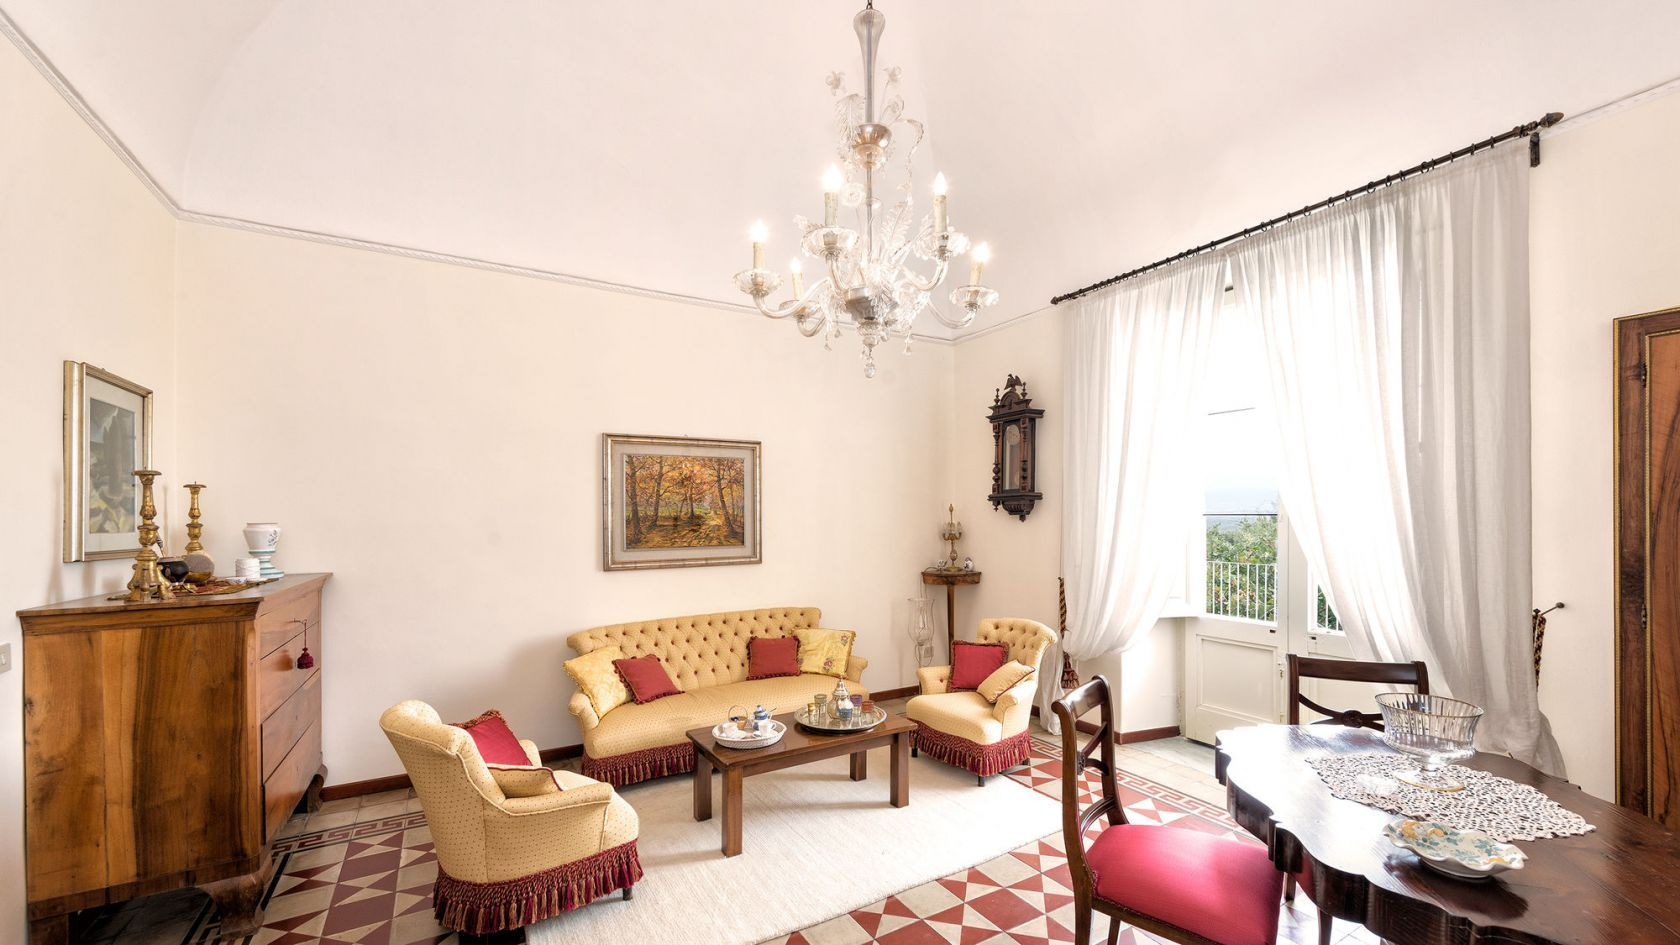 An historical villa with antique furniture